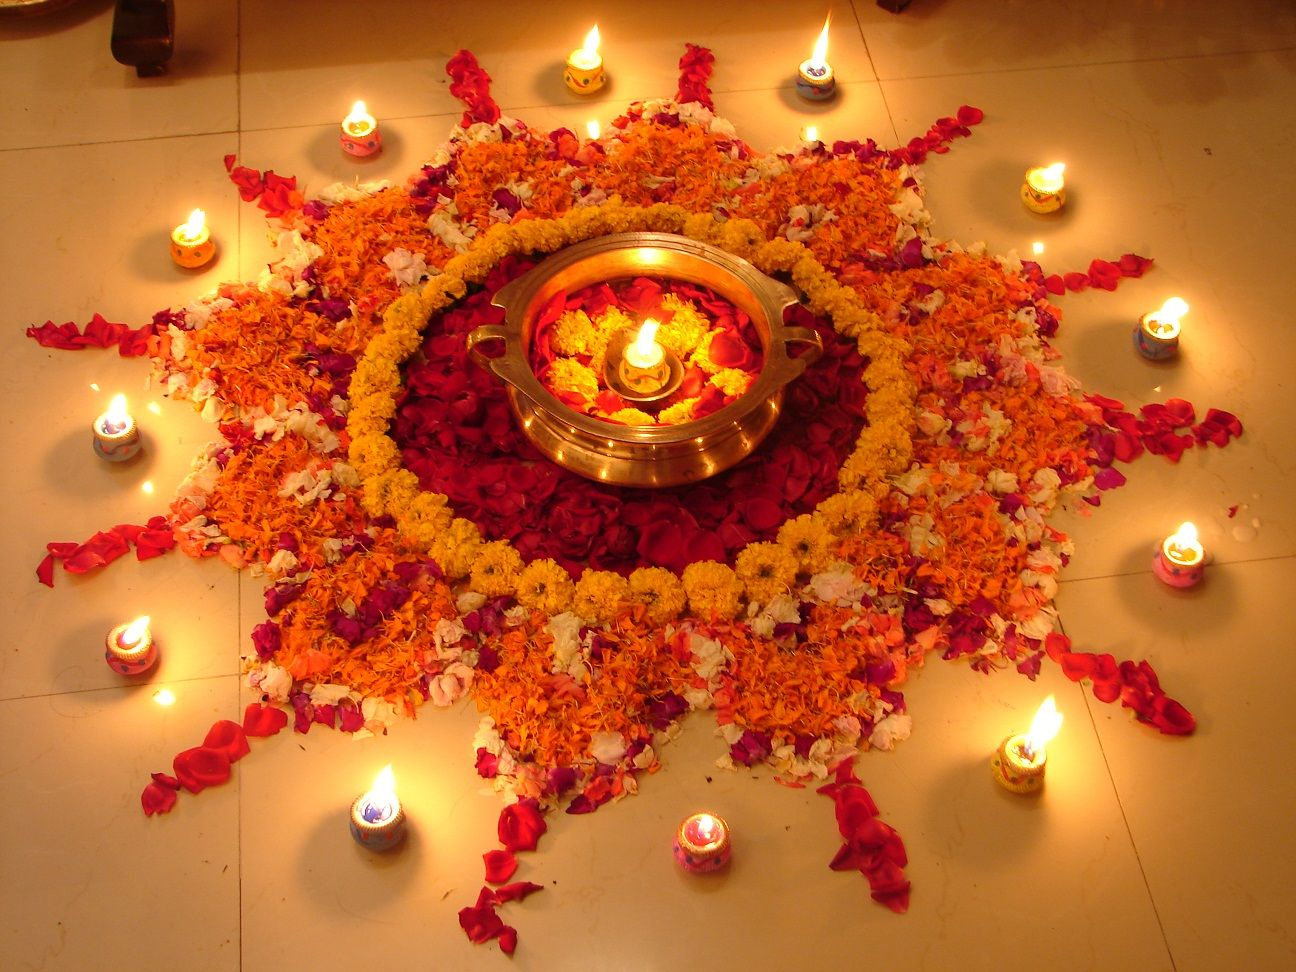 Rangoli Designs with Flowers for Diwali 2000+ Rangoli